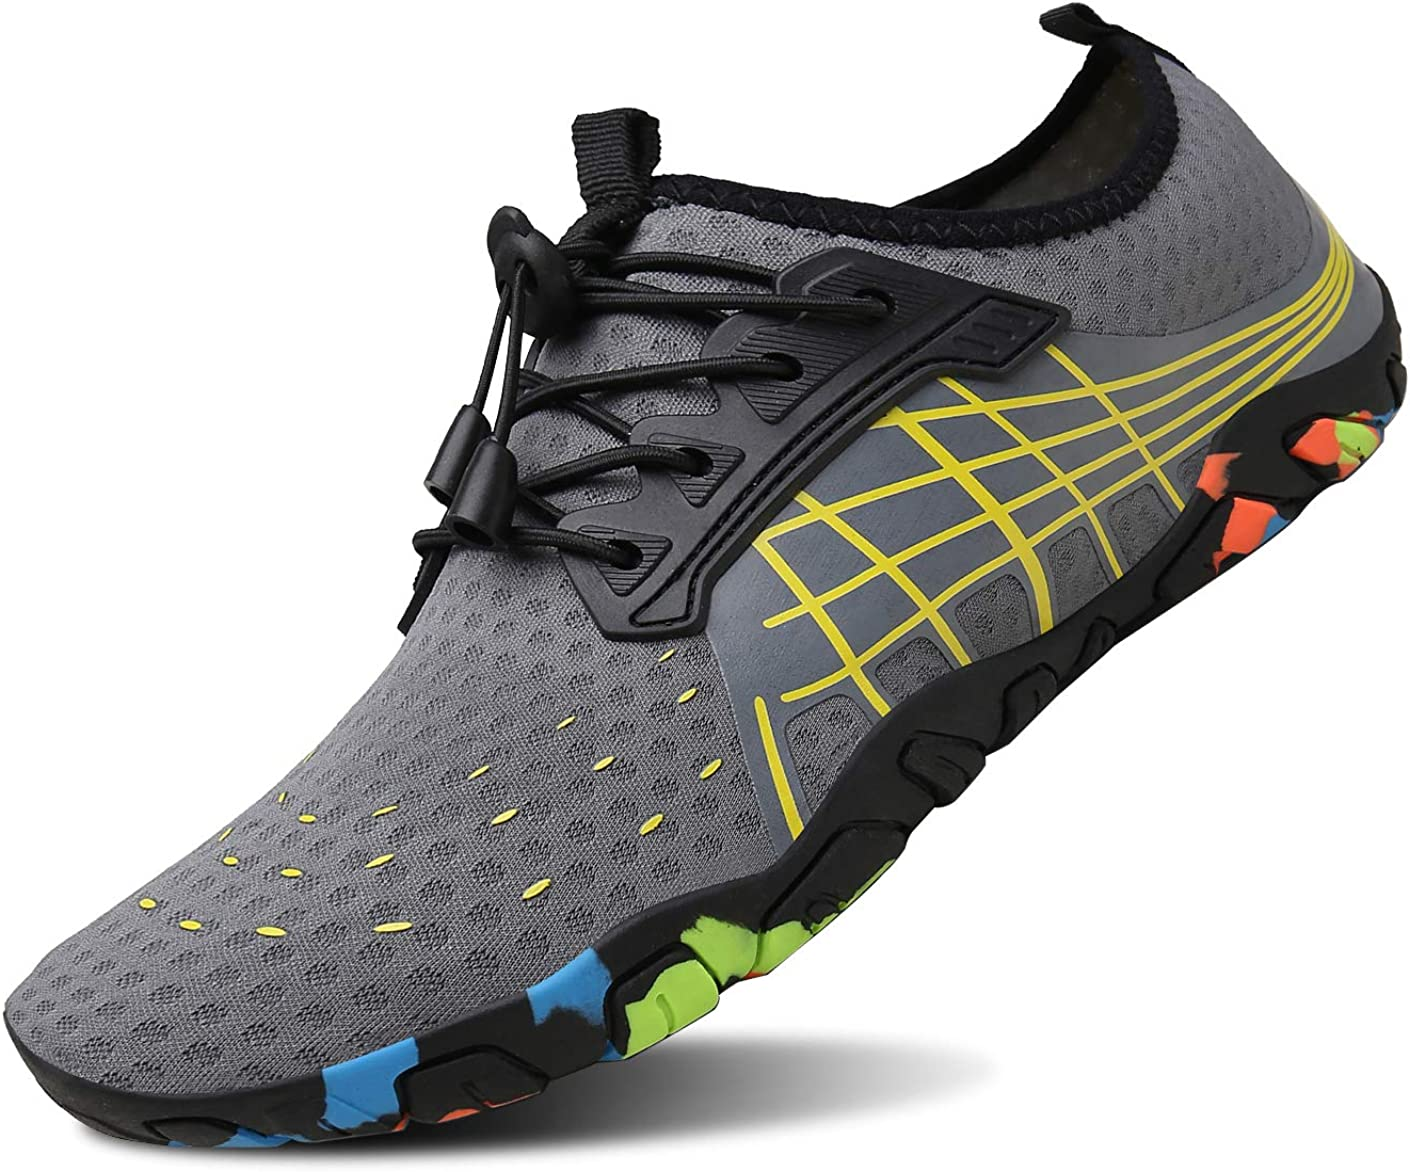 A surprise price is realized Kealux High quality Men Women Multifunctional Water Quick-Dry Barefoot Shoes